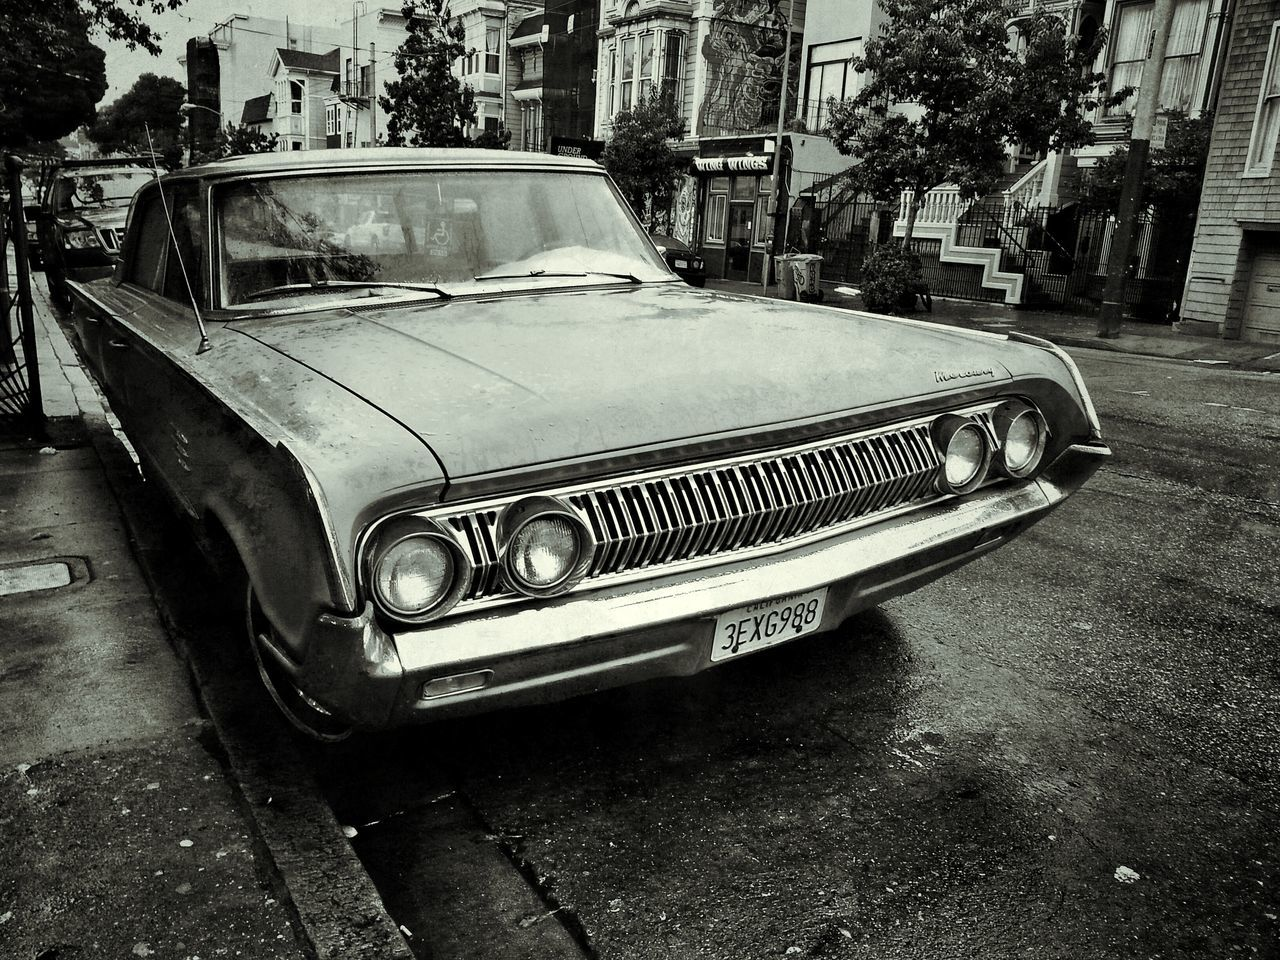 Mercury...Classic Car 1964 Mercury Montclair Monochrome Lower Haight